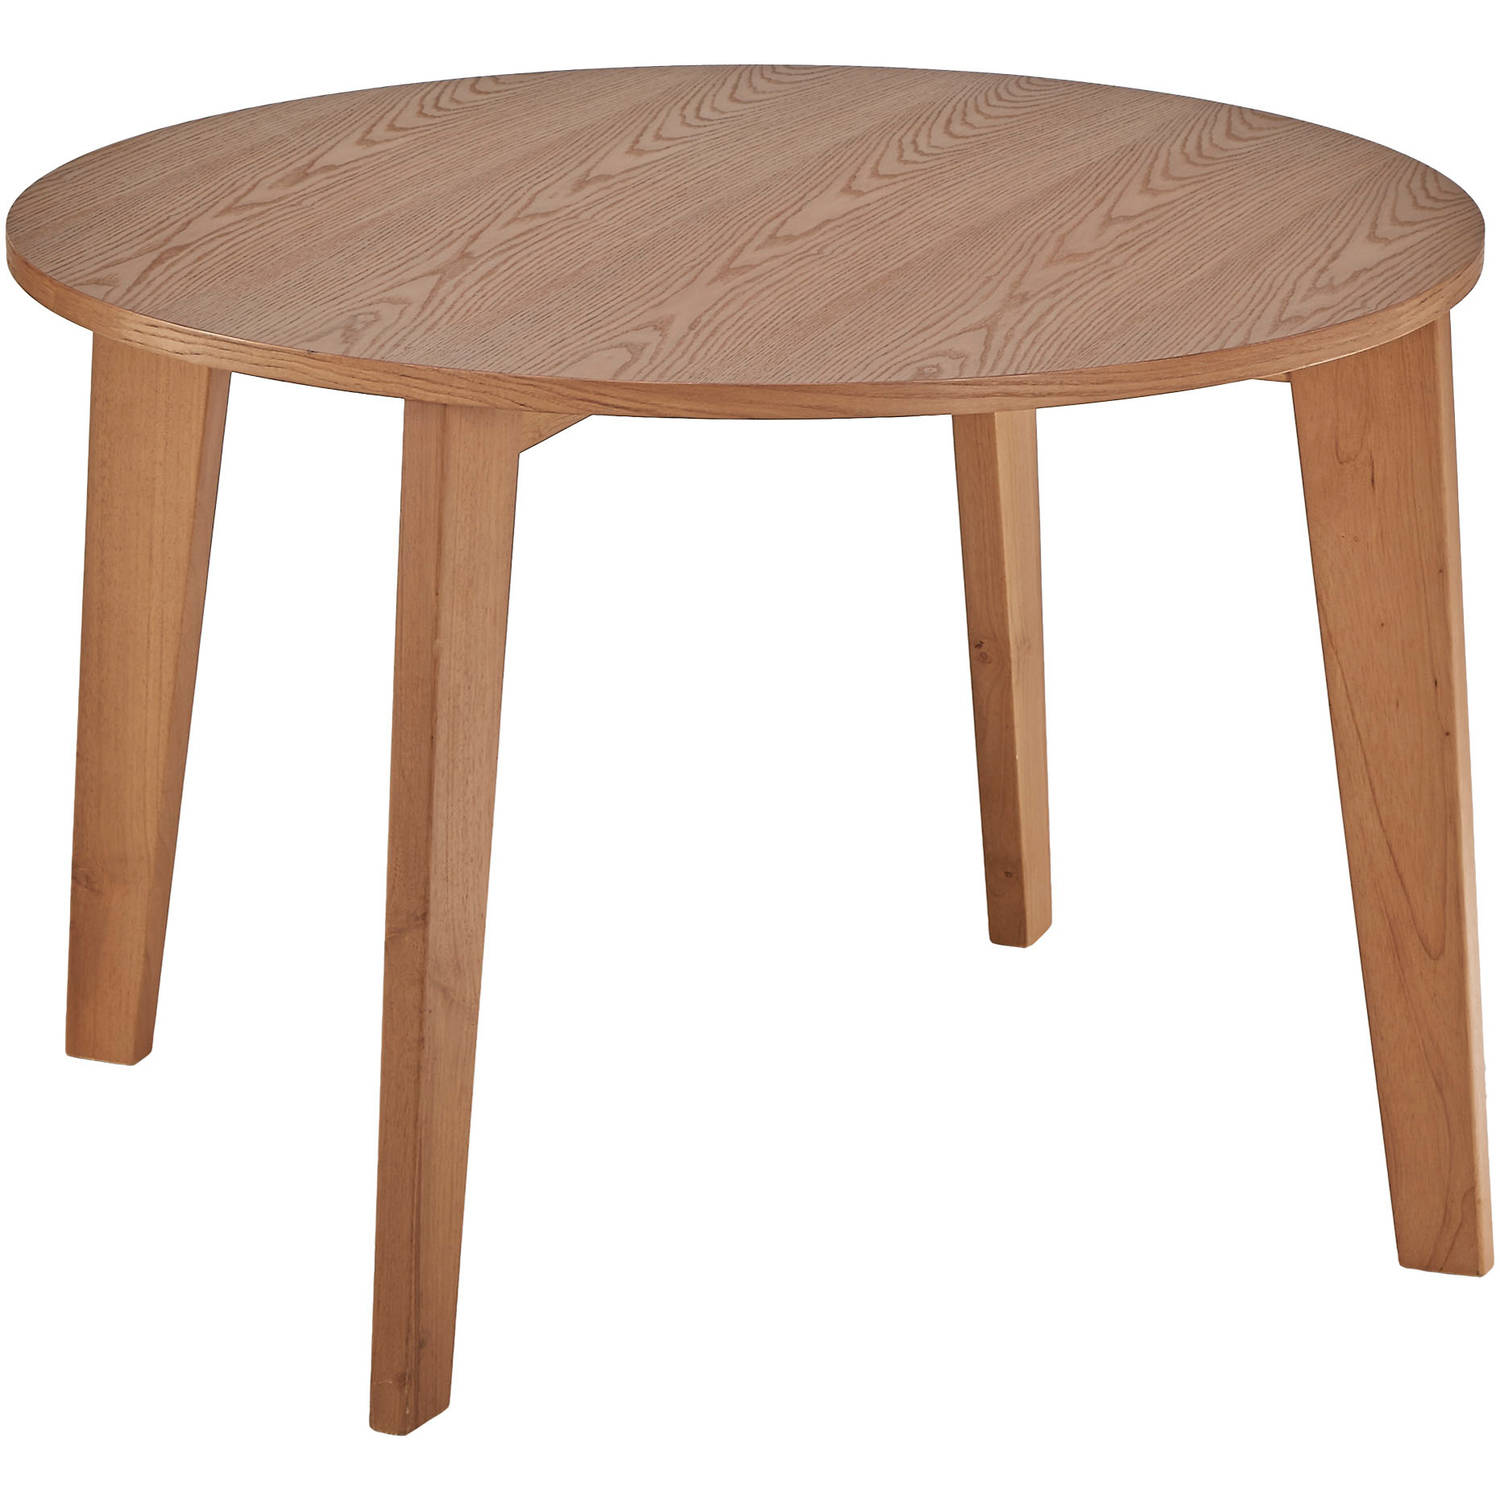 Chelsea Lane Baxter Round Dining Table, Light Oak by Overstock